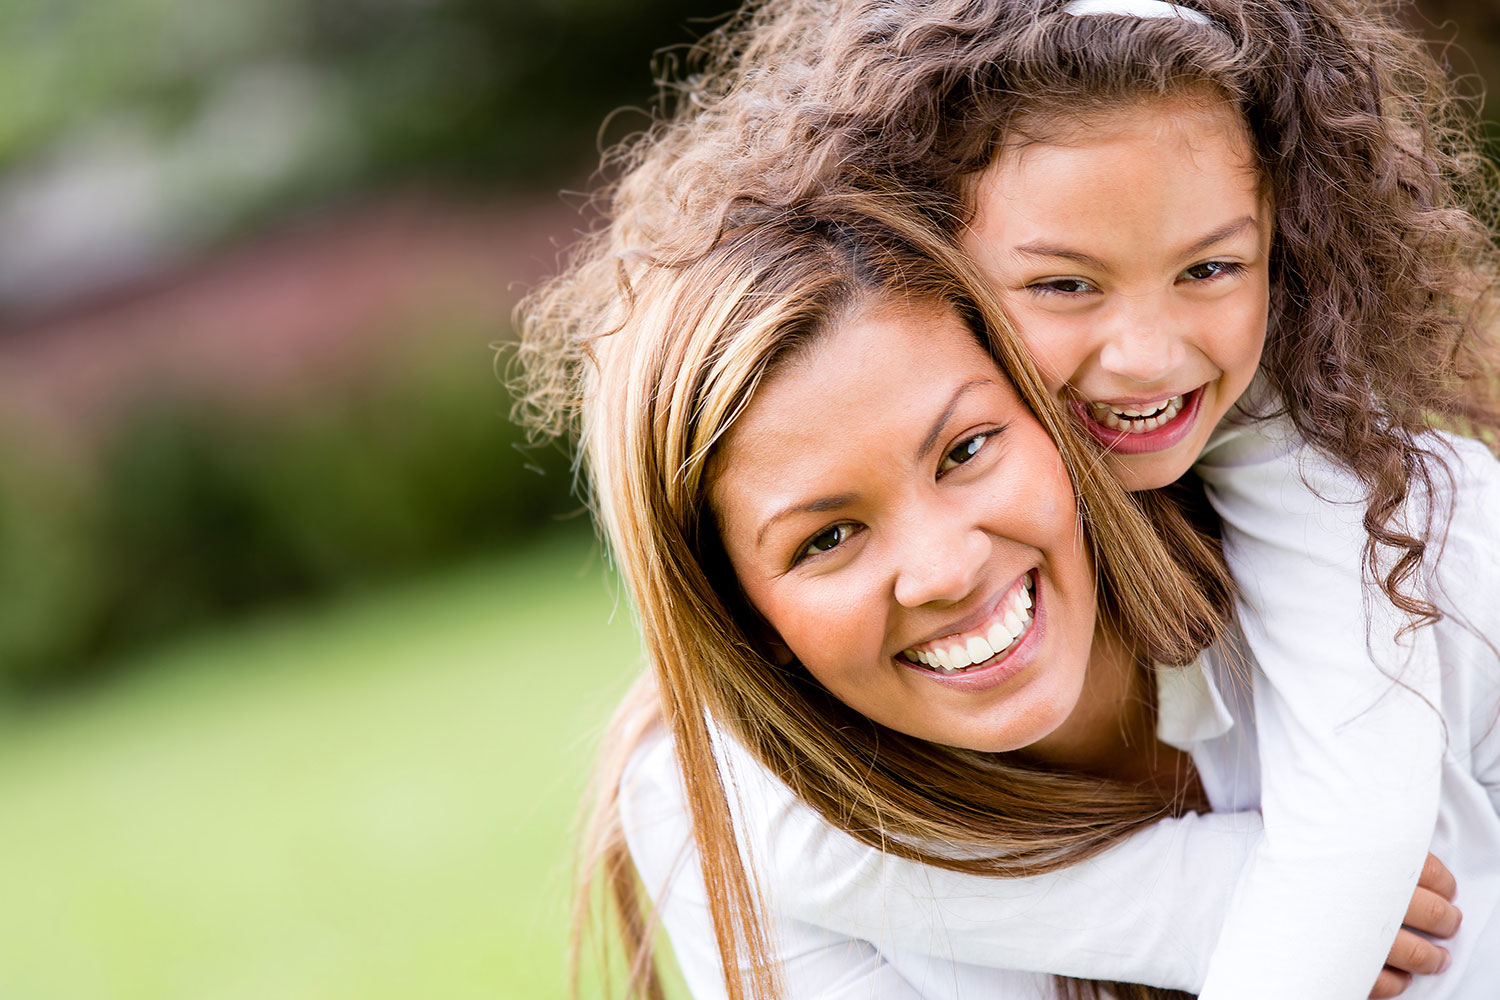 Highlights Of Changes To Child Support, Custody, Visitation And Maintenance In Illinois